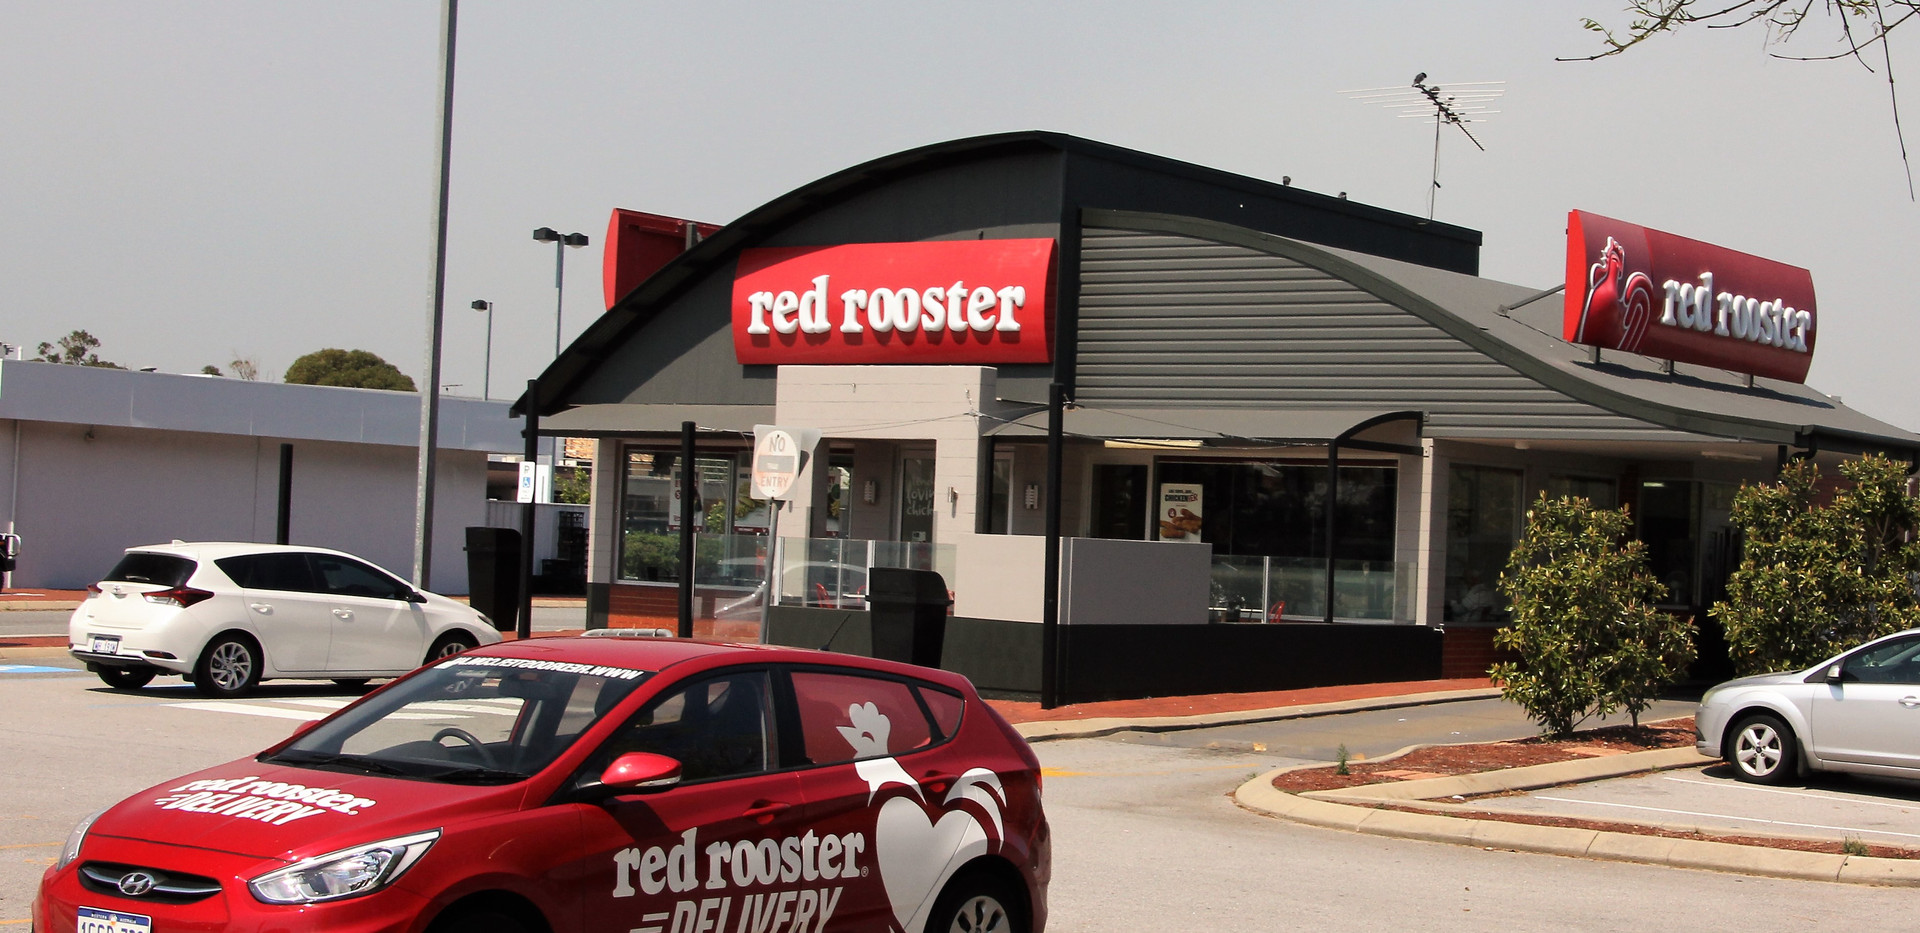 Red Rooster.JPG